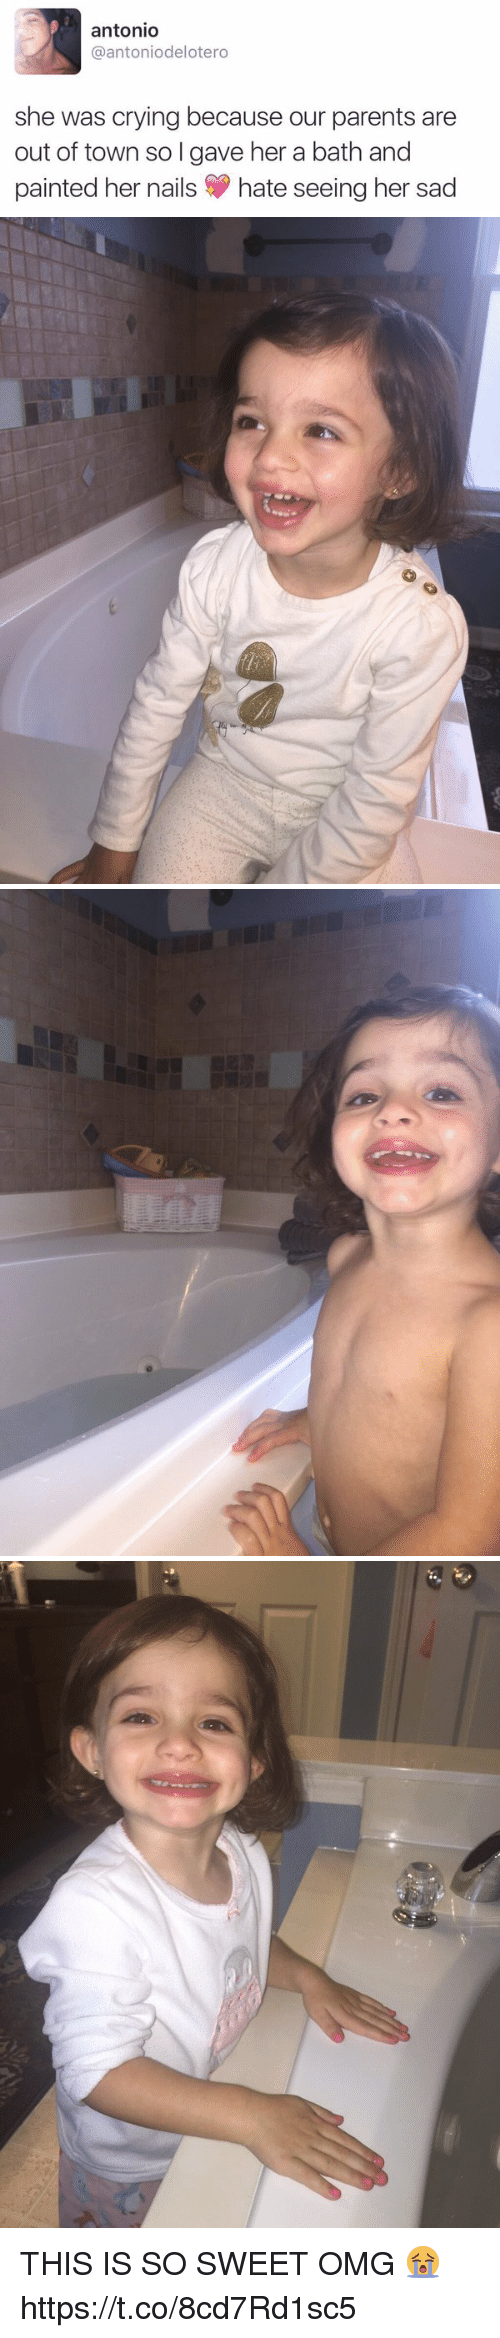 Crying, Memes, and Omg: antonio  Gaantoniodelotero  she was crying because our parents are  out of town so I gave her a bath and  painted her nails S hate seeing her sad   00 THIS IS SO SWEET OMG 😭 https://t.co/8cd7Rd1sc5